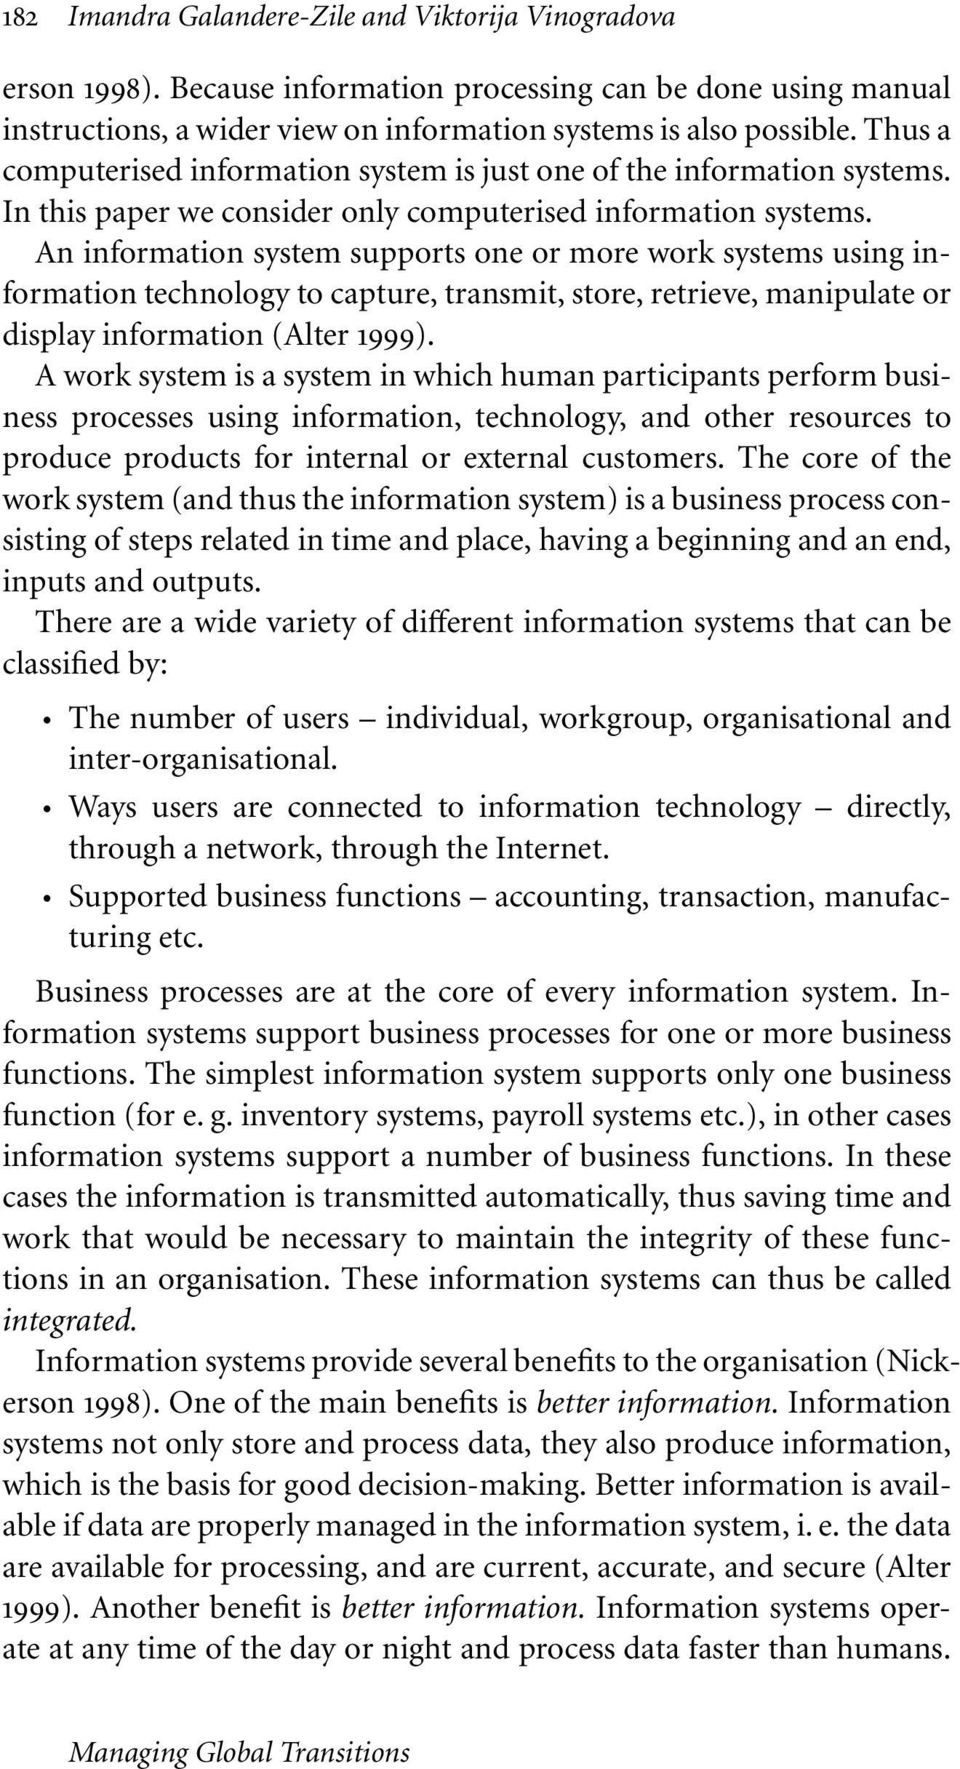 An information system supports one or more work systems using information technology to capture, transmit, store, retrieve, manipulate or display information (Alter 1999).